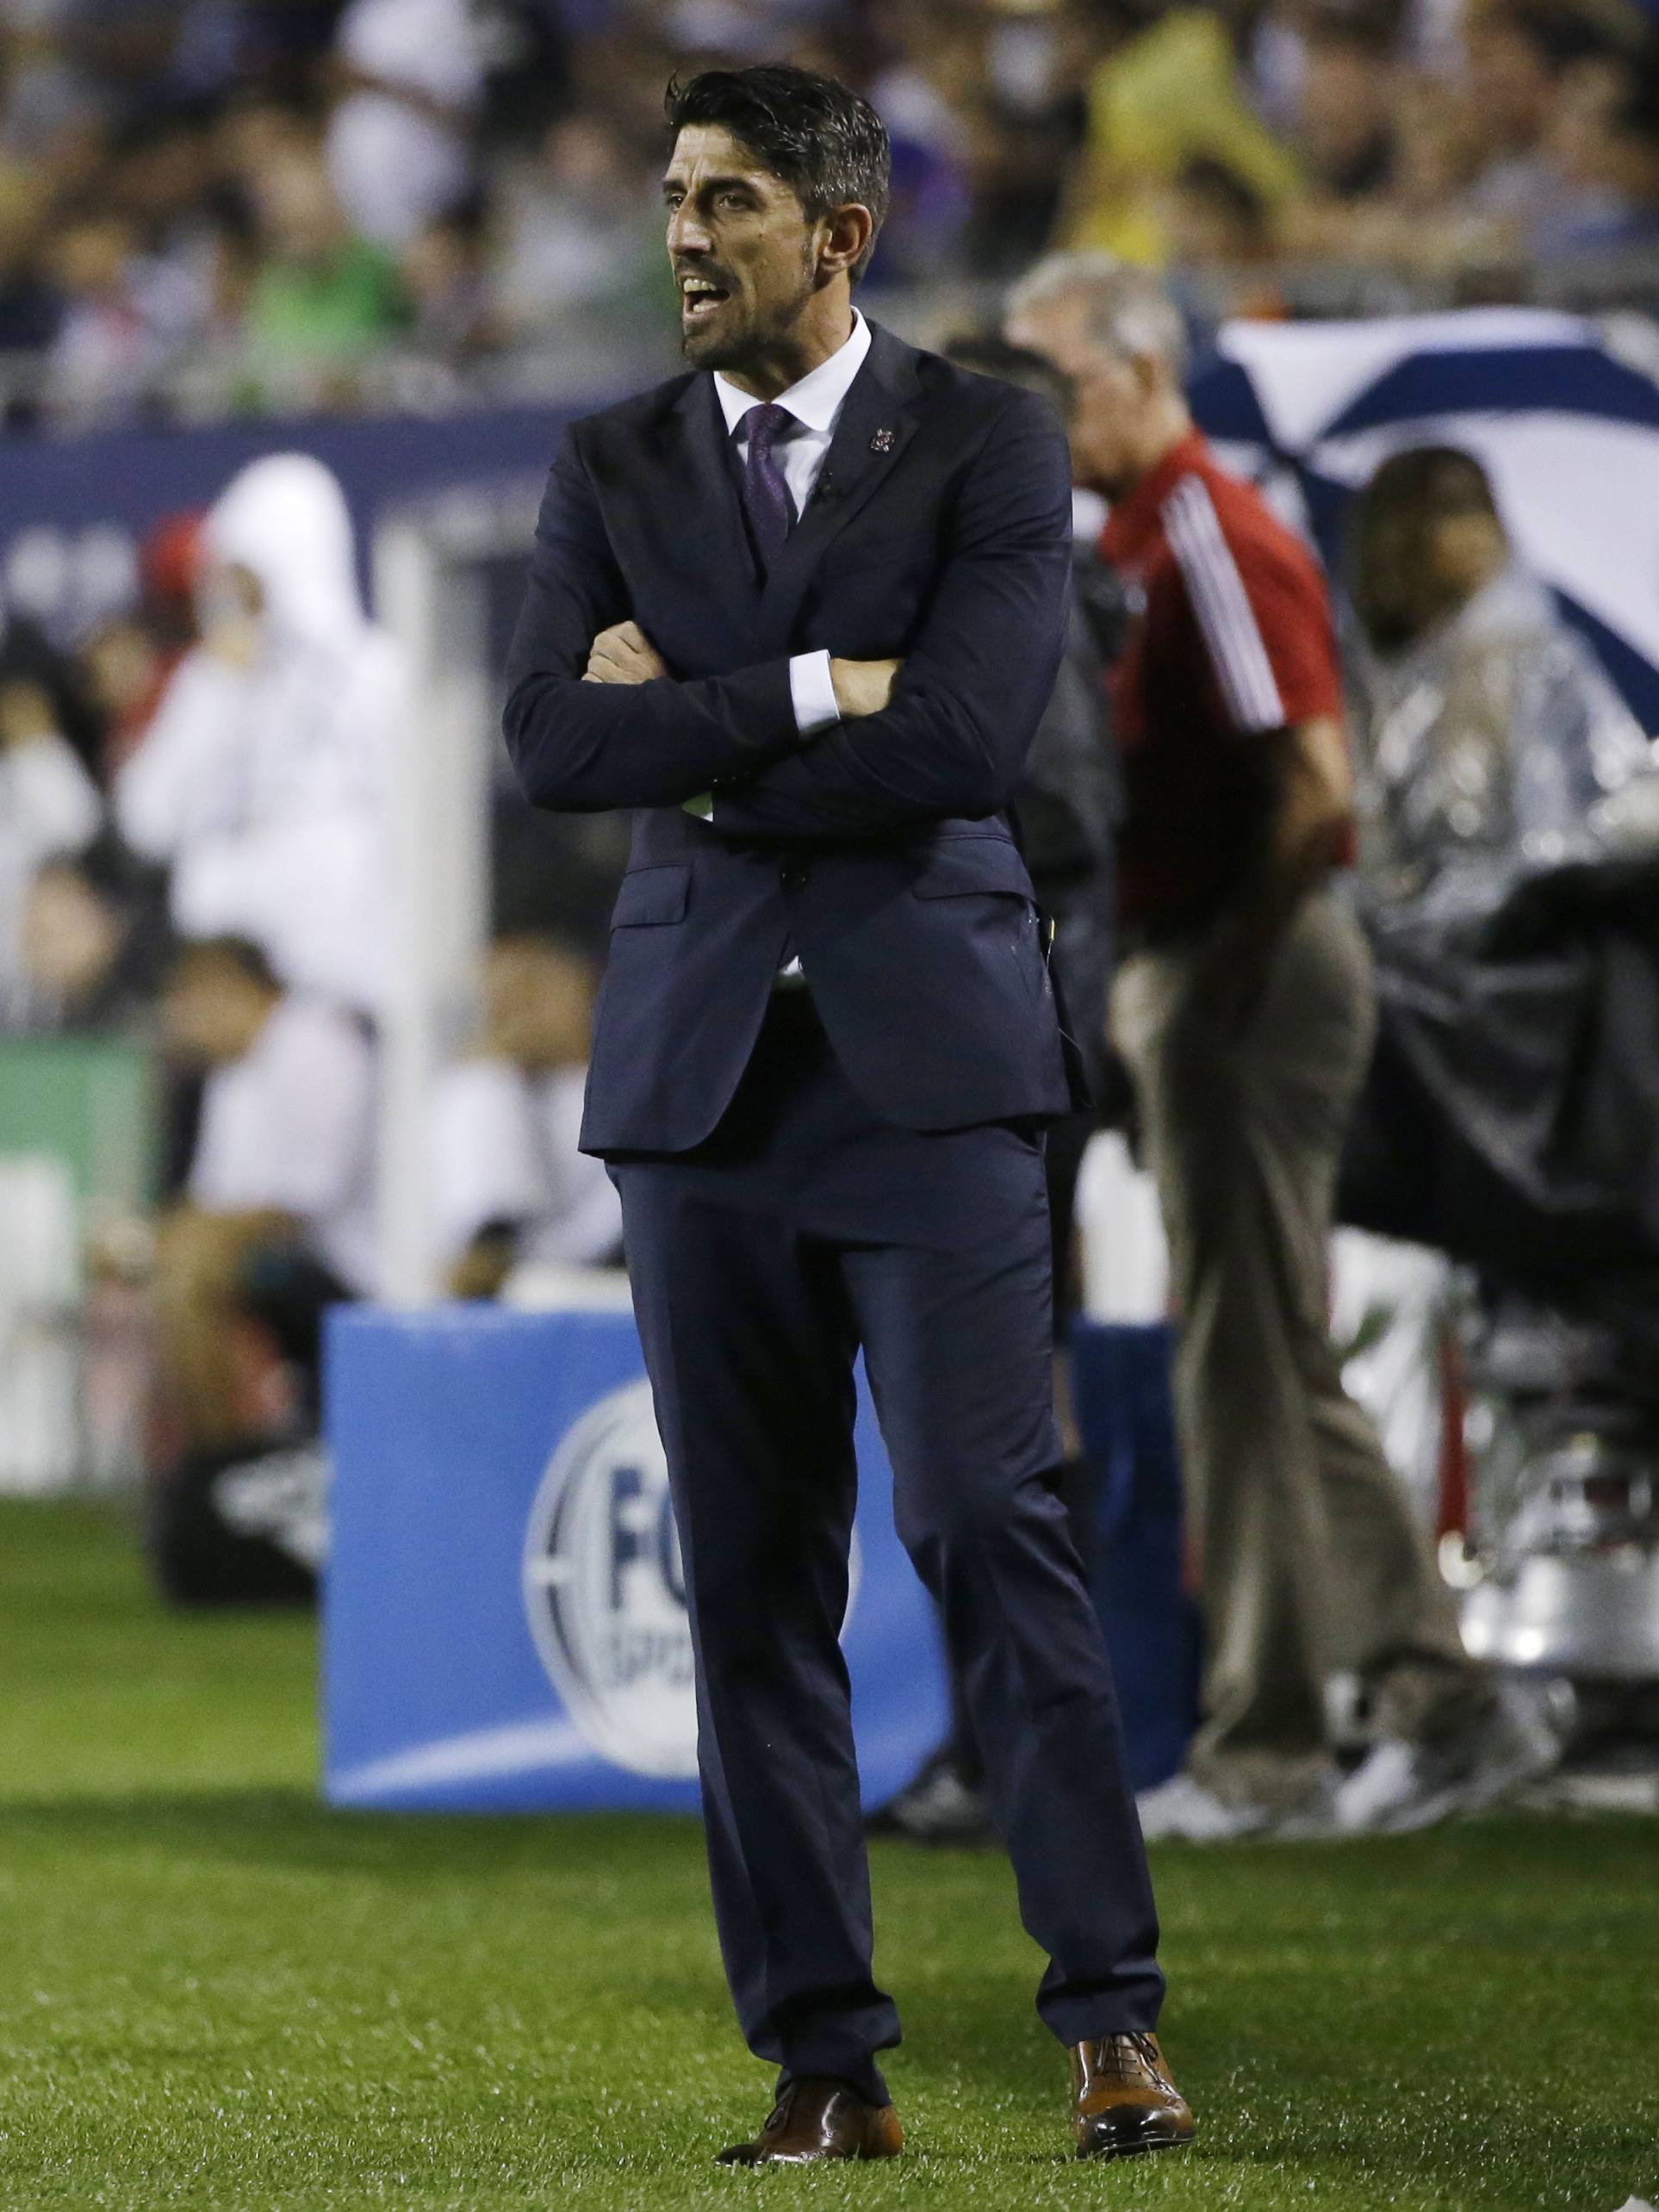 MLS All-Stars coach Veljko Paunovic talks to his players during the first half of the MLS All-Star Game against Real Madrid, Wednesday in Chicago.